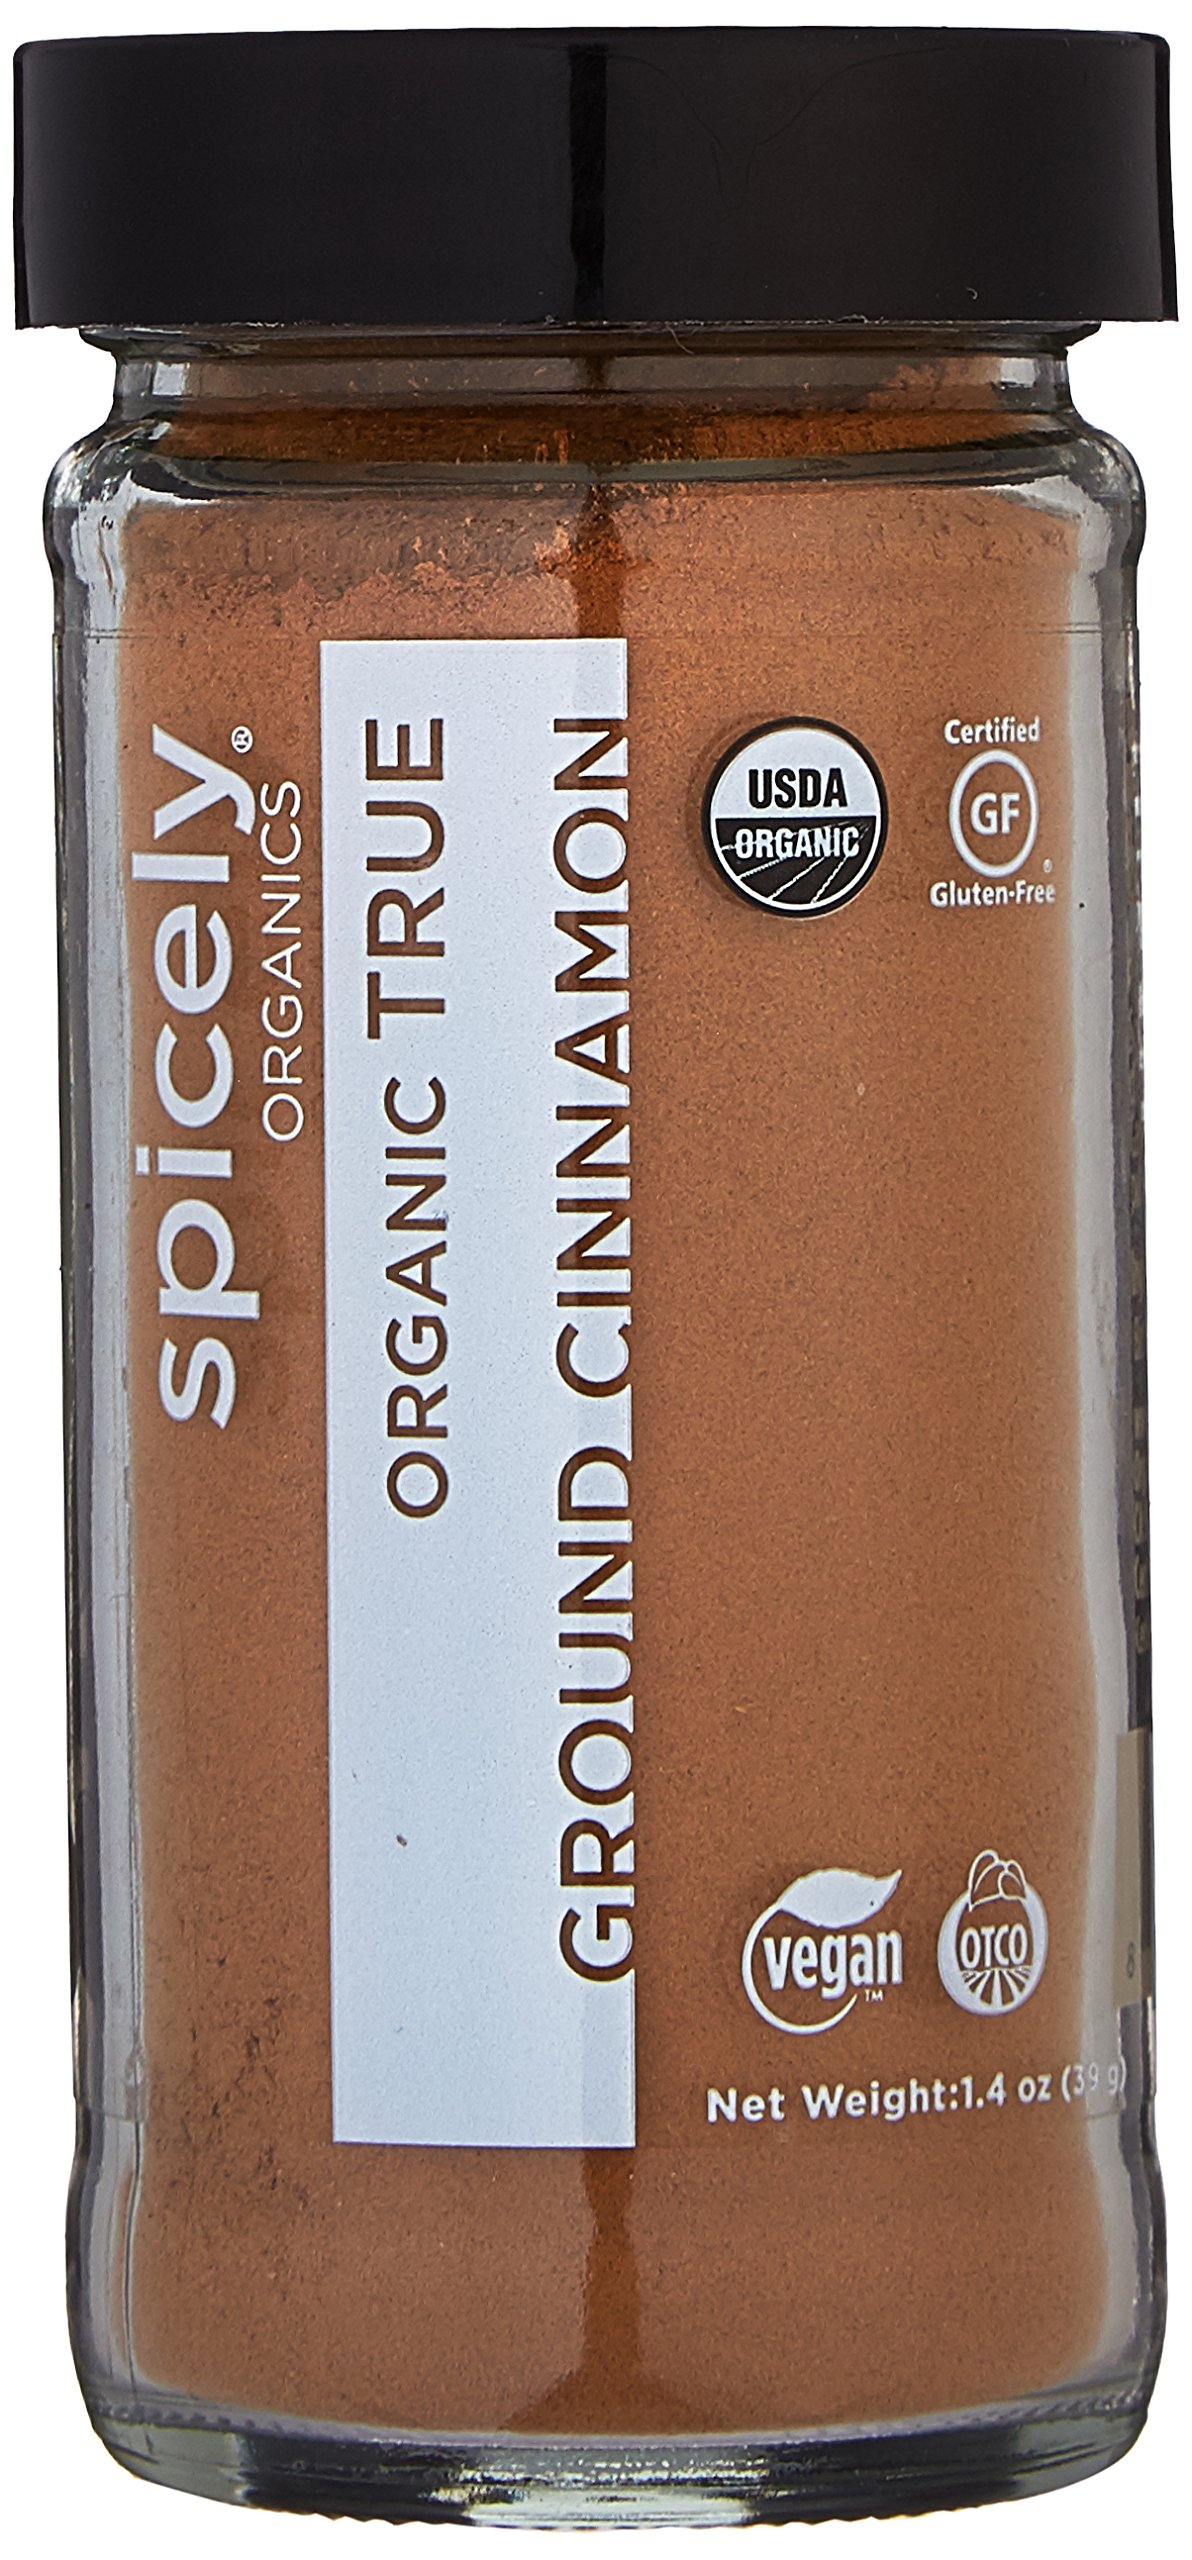 Spicely Organic Cinnamon True Powder (Ceylon) 1.40 Ounce Jar Certified Gluten Free